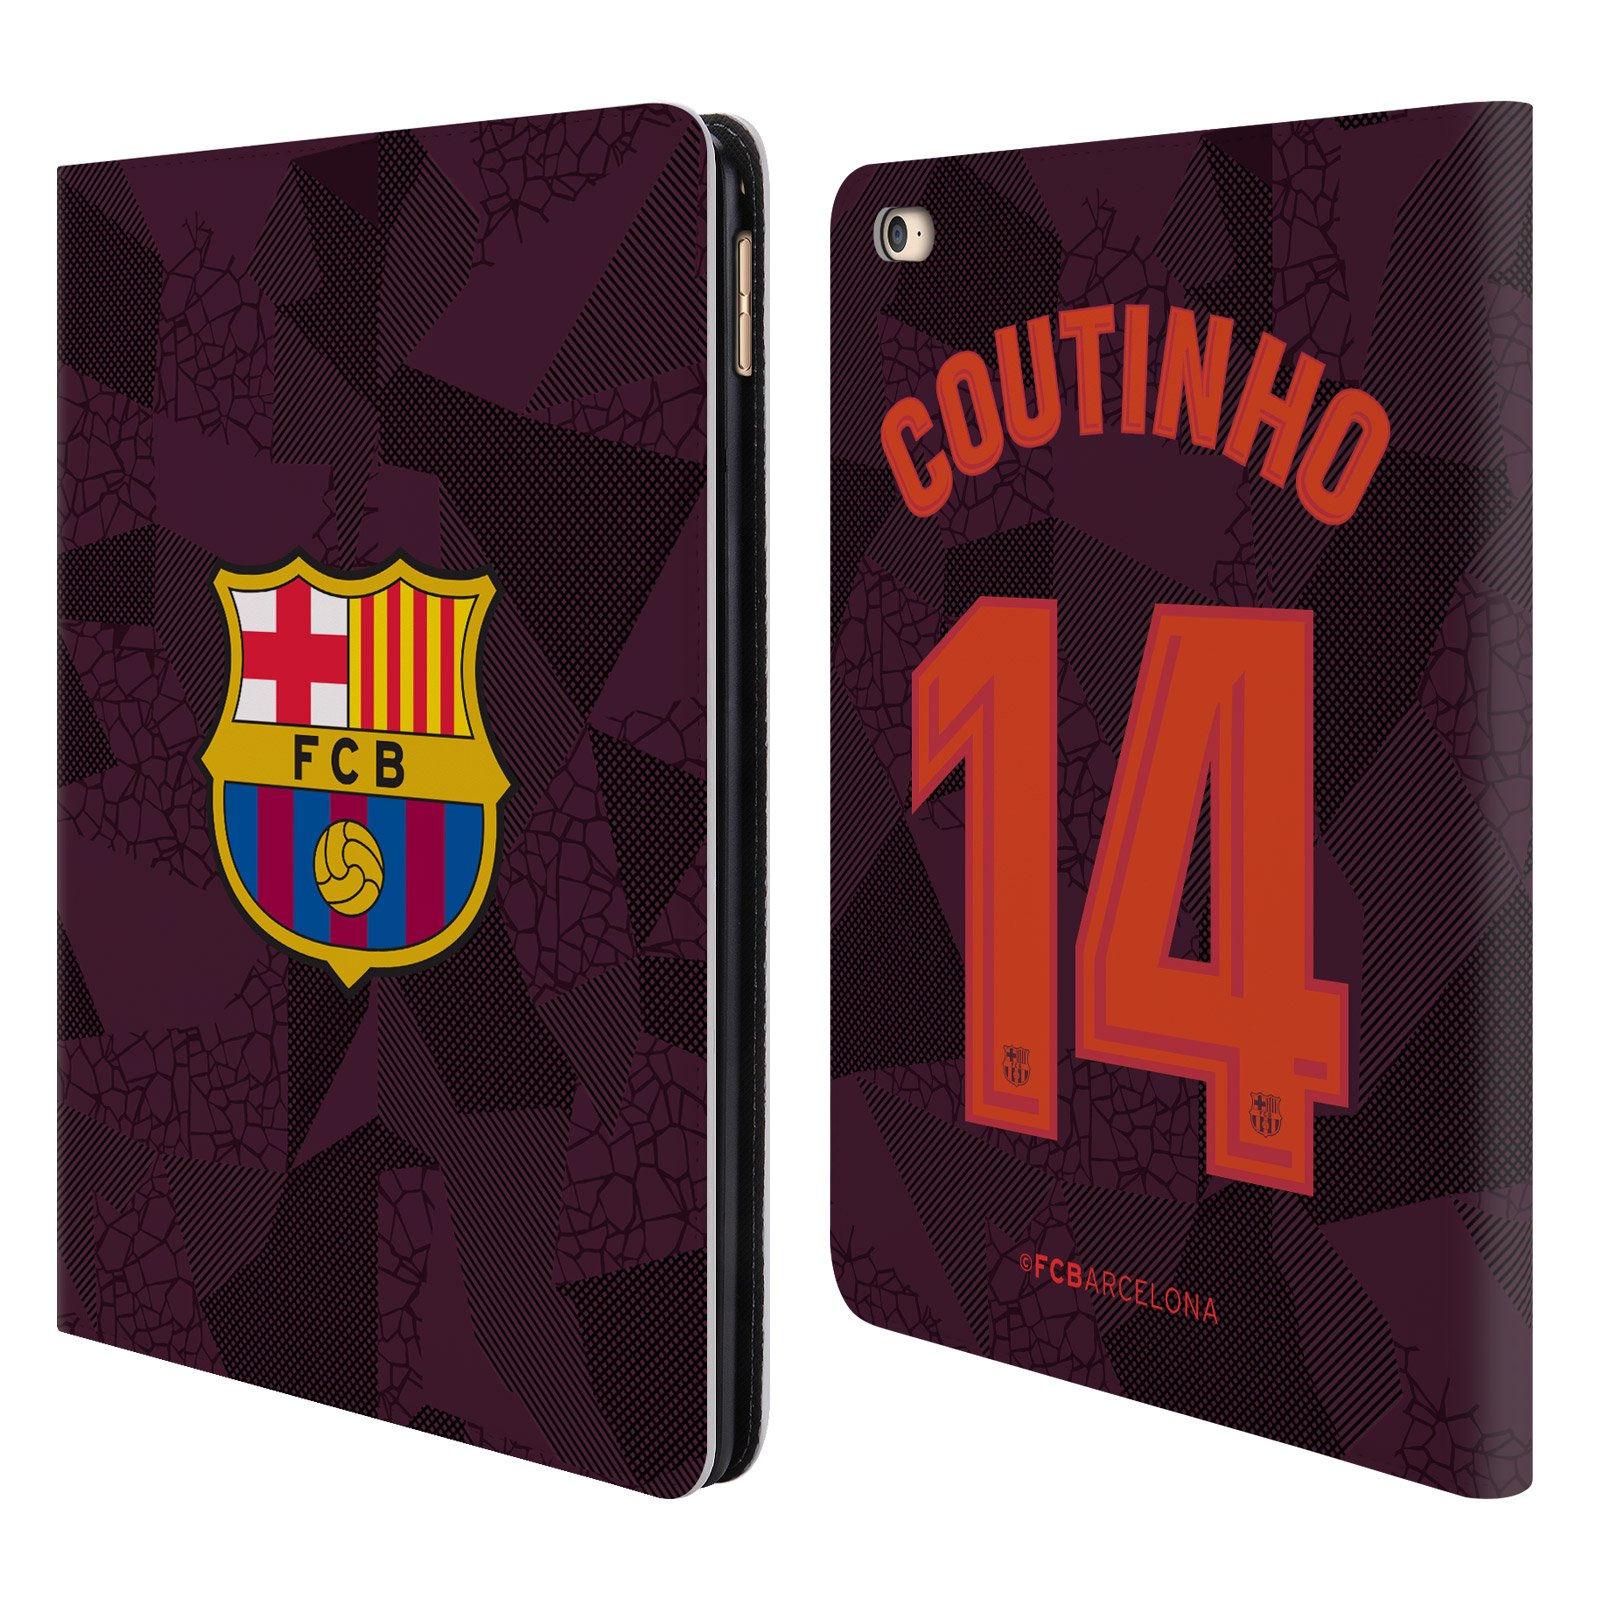 Official FC Barcelona Philippe Coutinho 2017/18 Players Third Kit Group 1 Leather Book Wallet Case Cover Compatible for iPad Air 2 (2014)